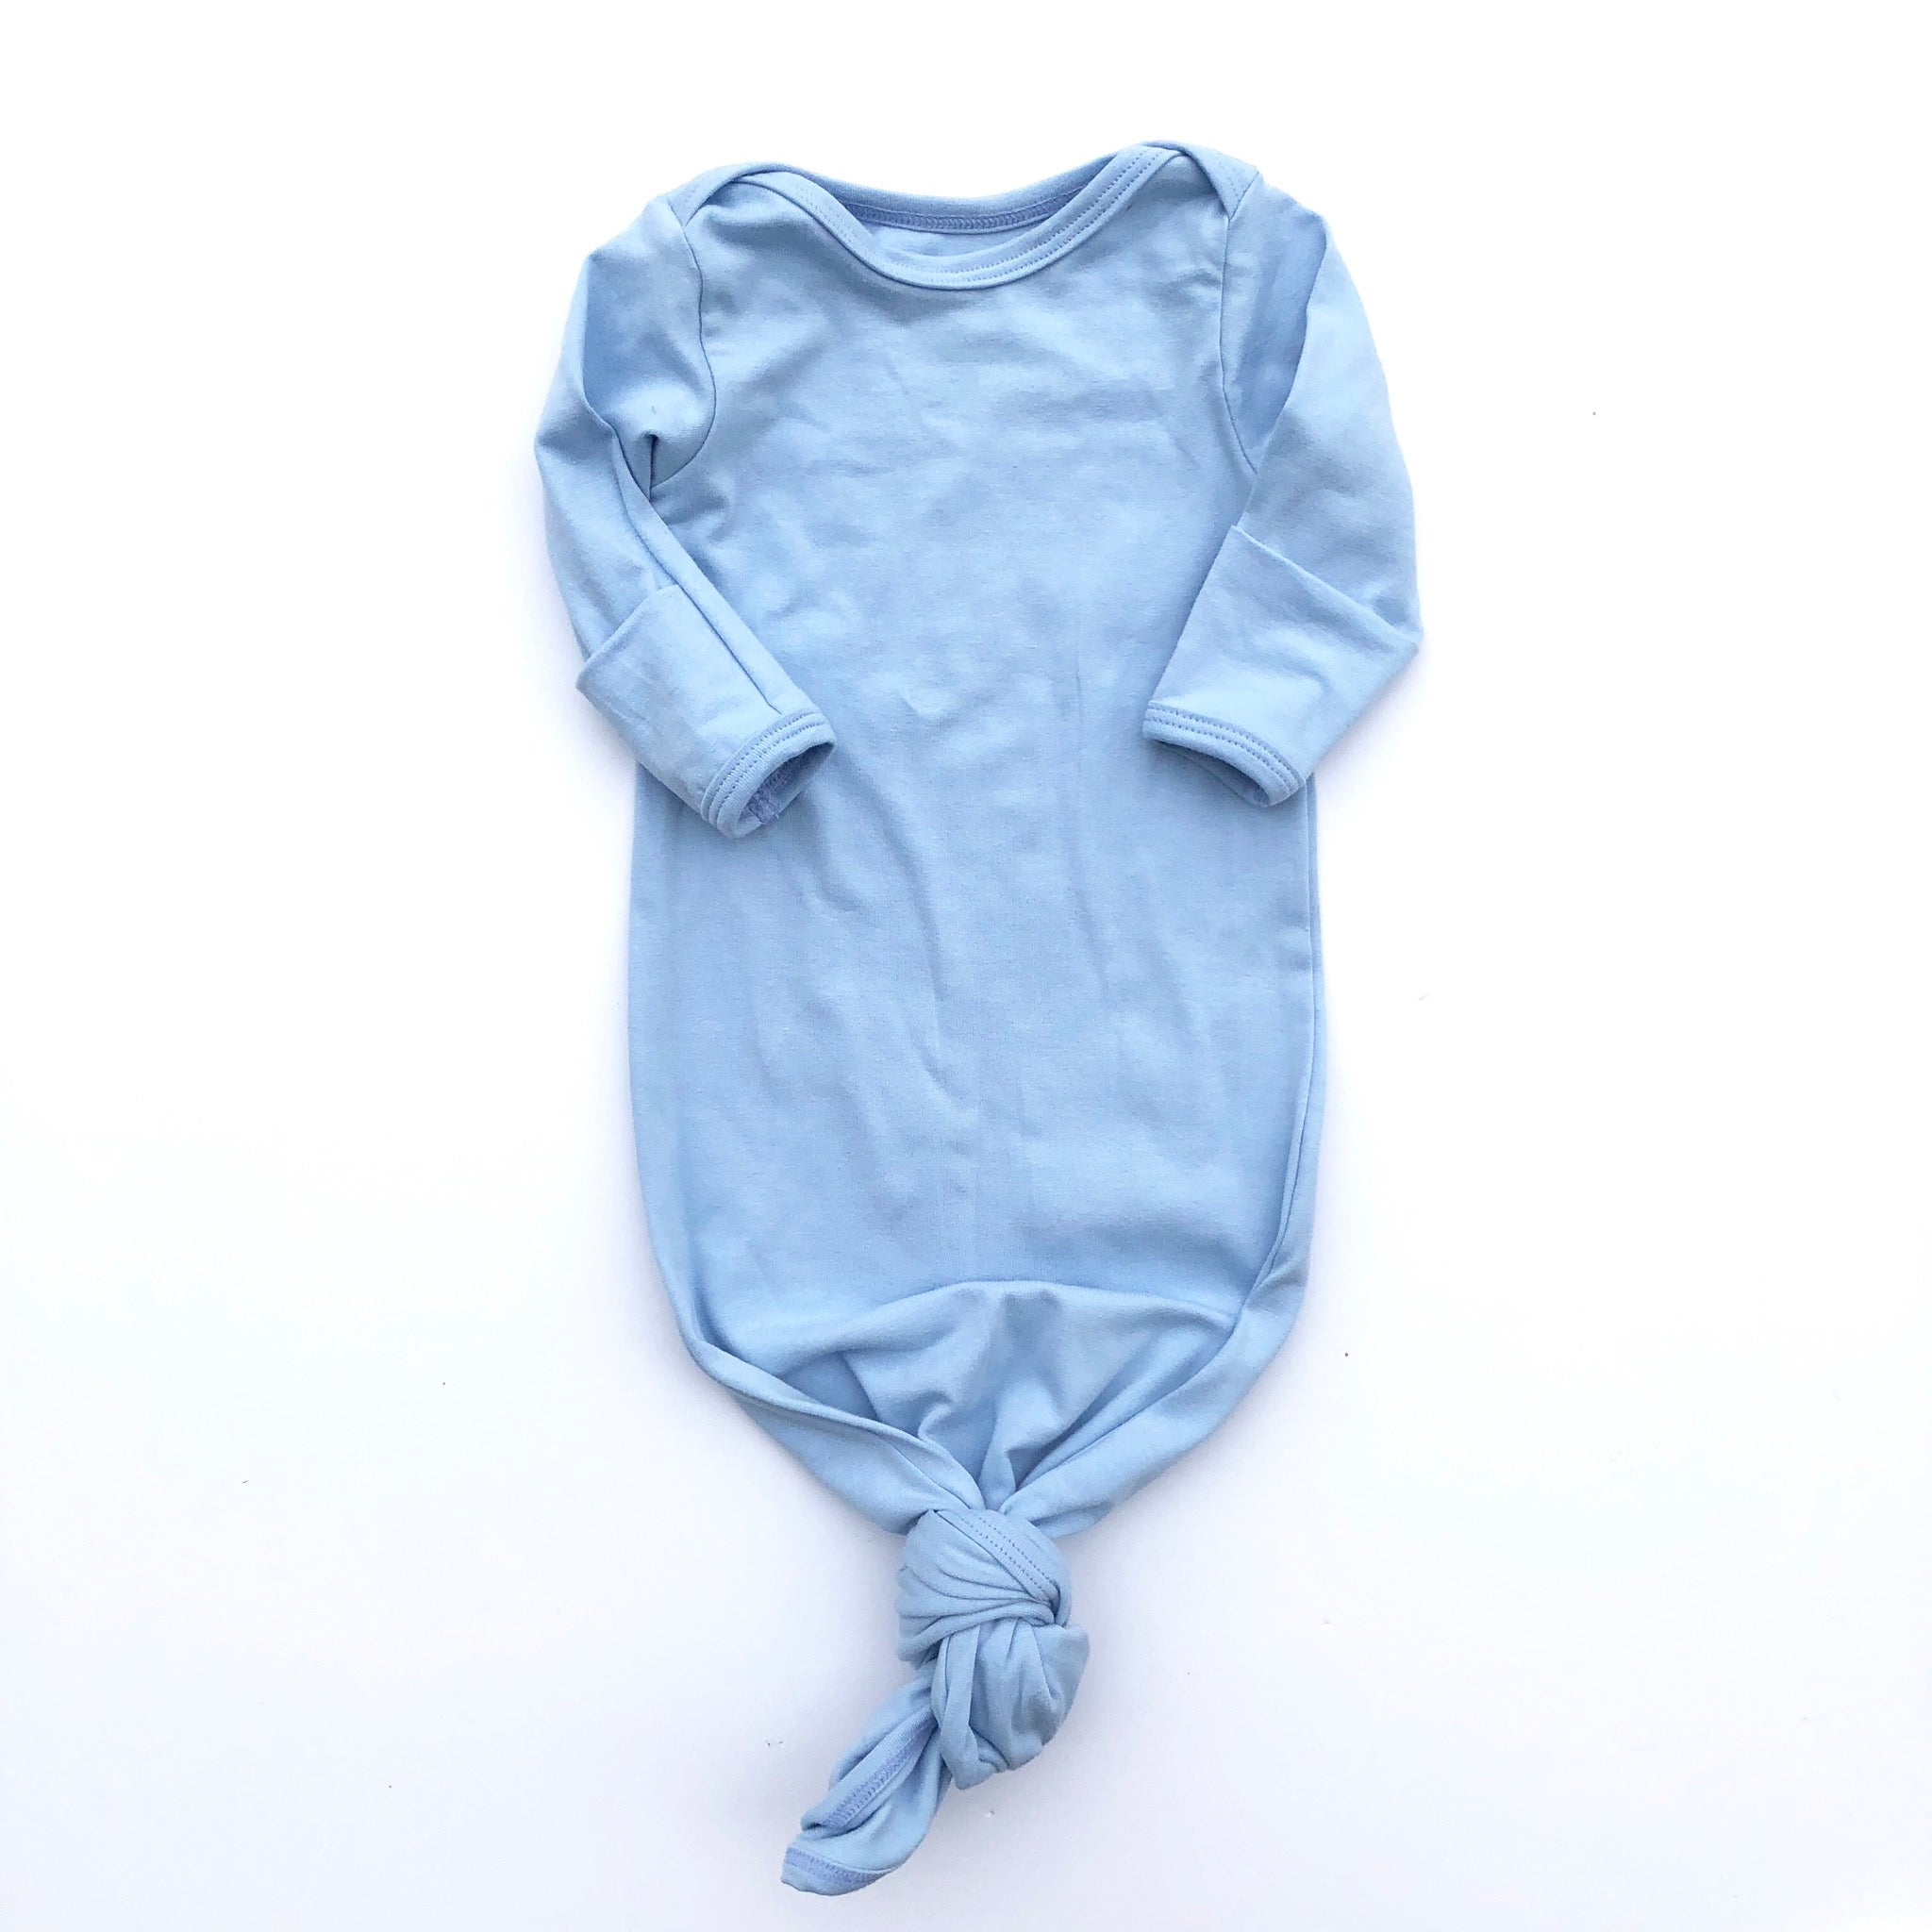 Sky Blue Knotted Bottom Baby Layette Gown - Oh So Vera